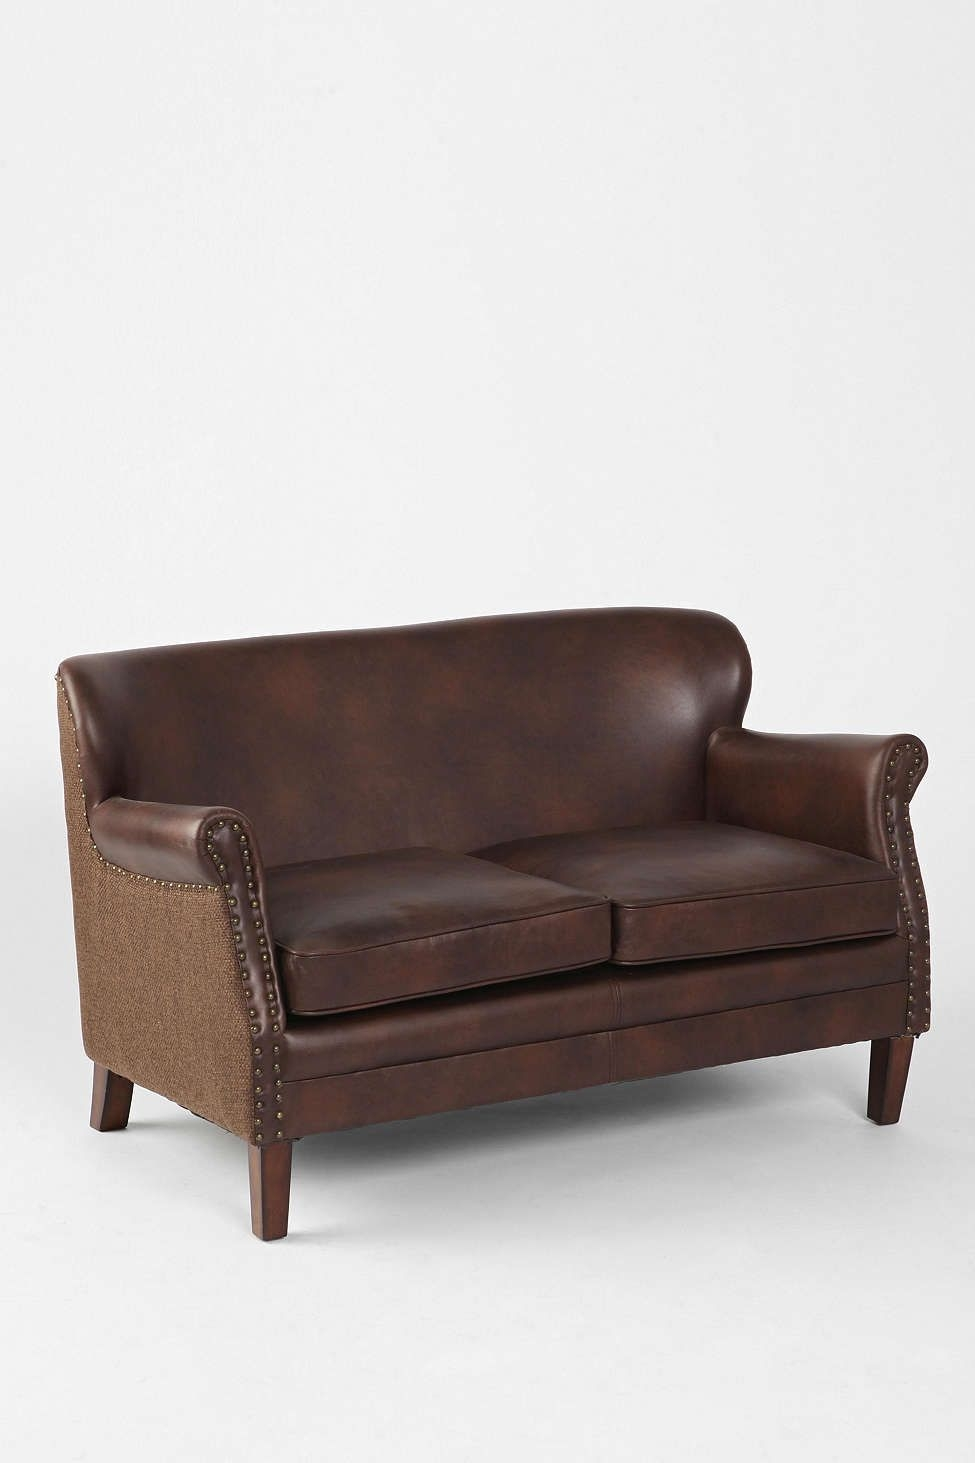 Merveilleux Vegan Leather Couch   Ideas On Foter